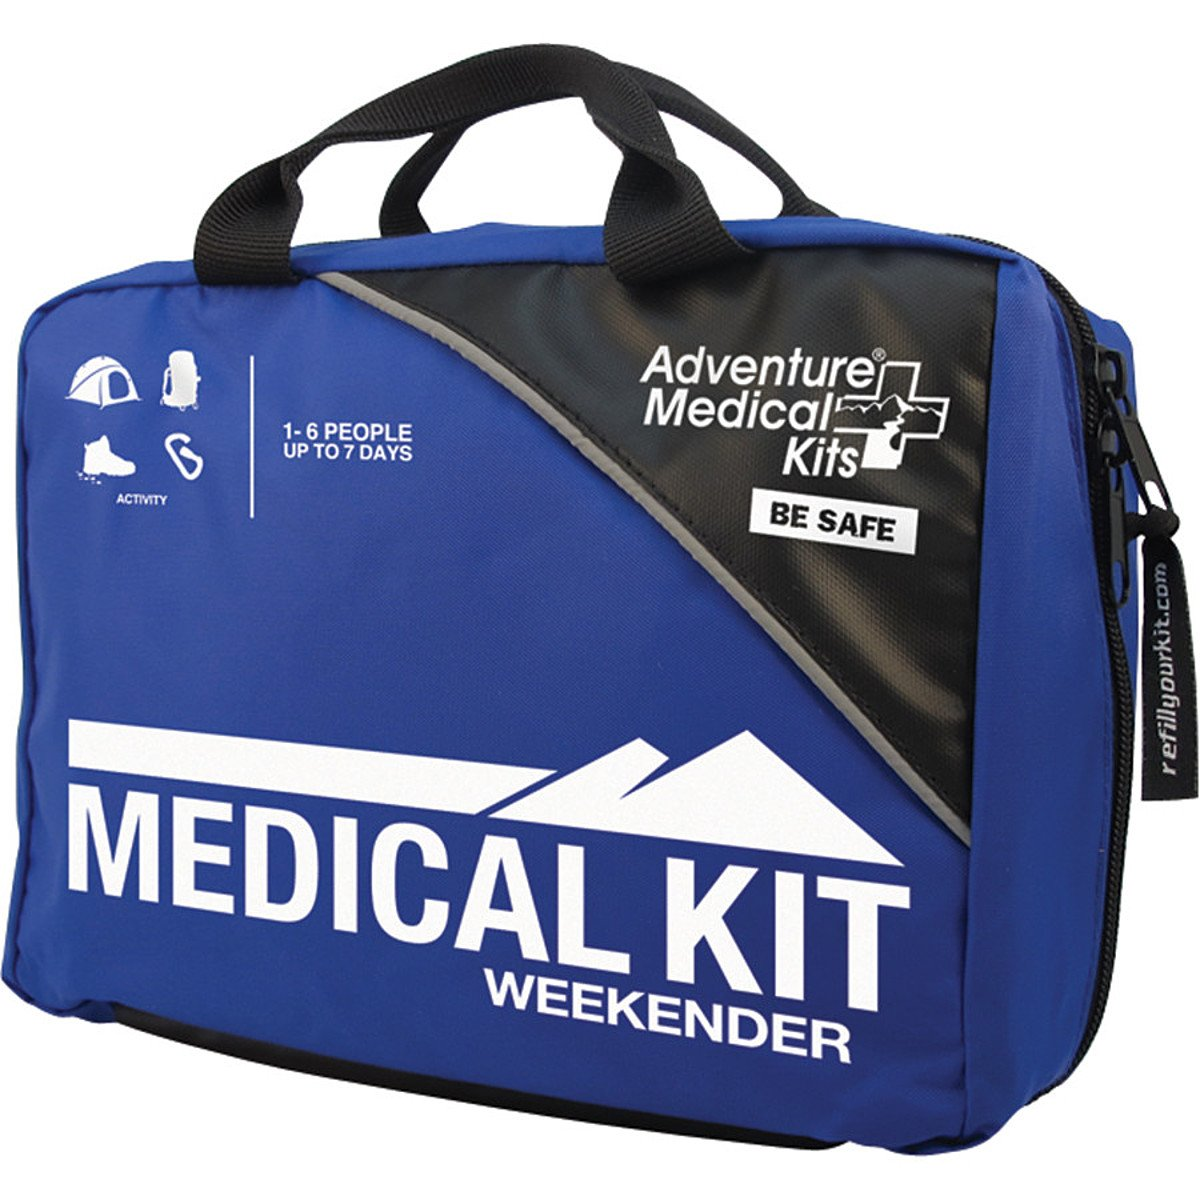 Adventure Medical Kits Weekender-Set von Adventure Medical Kits